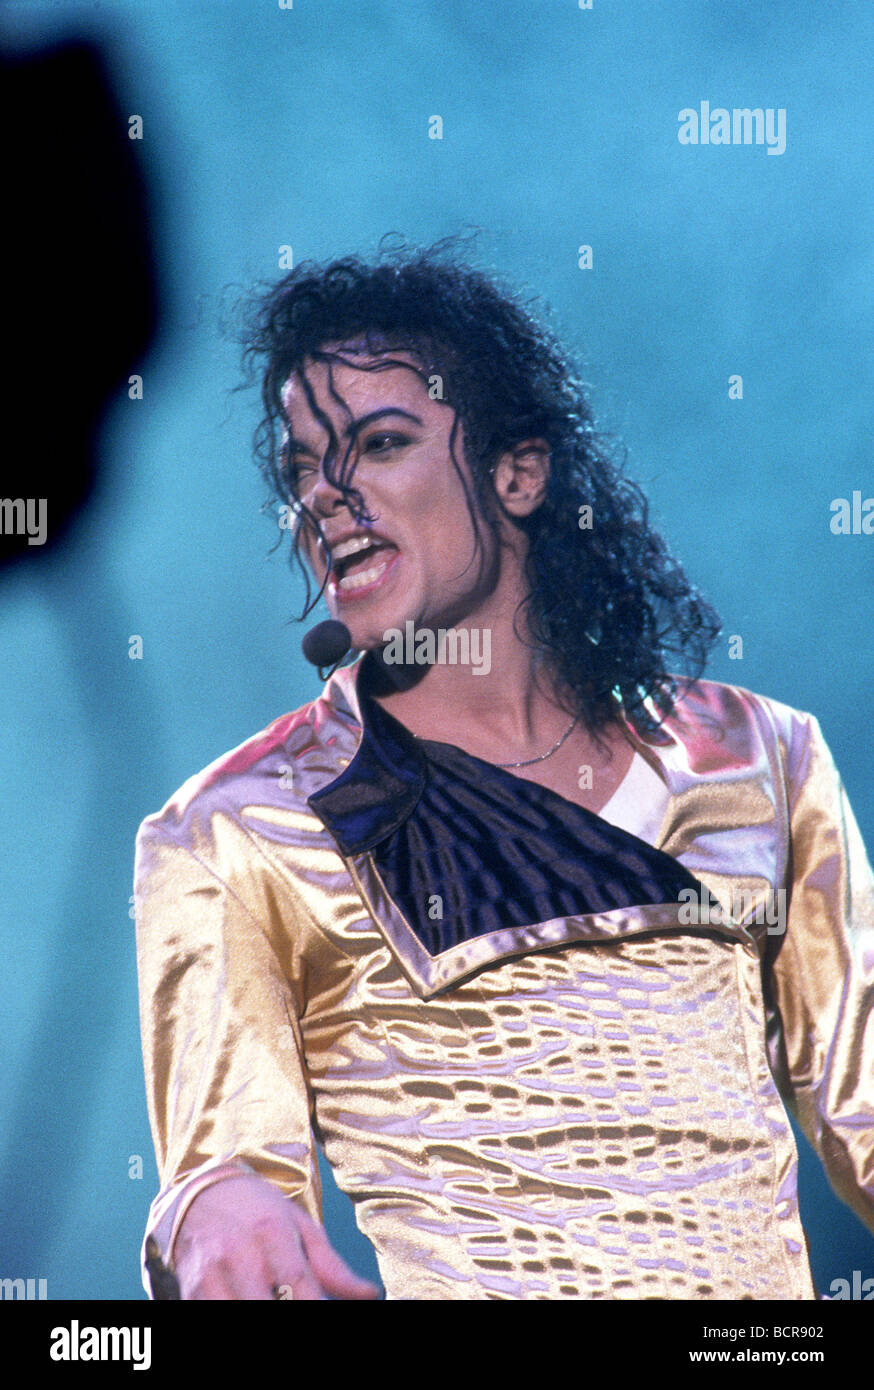 MICHAEL JACKSON im Wembley-Stadion London Juli 1997 Stockbild